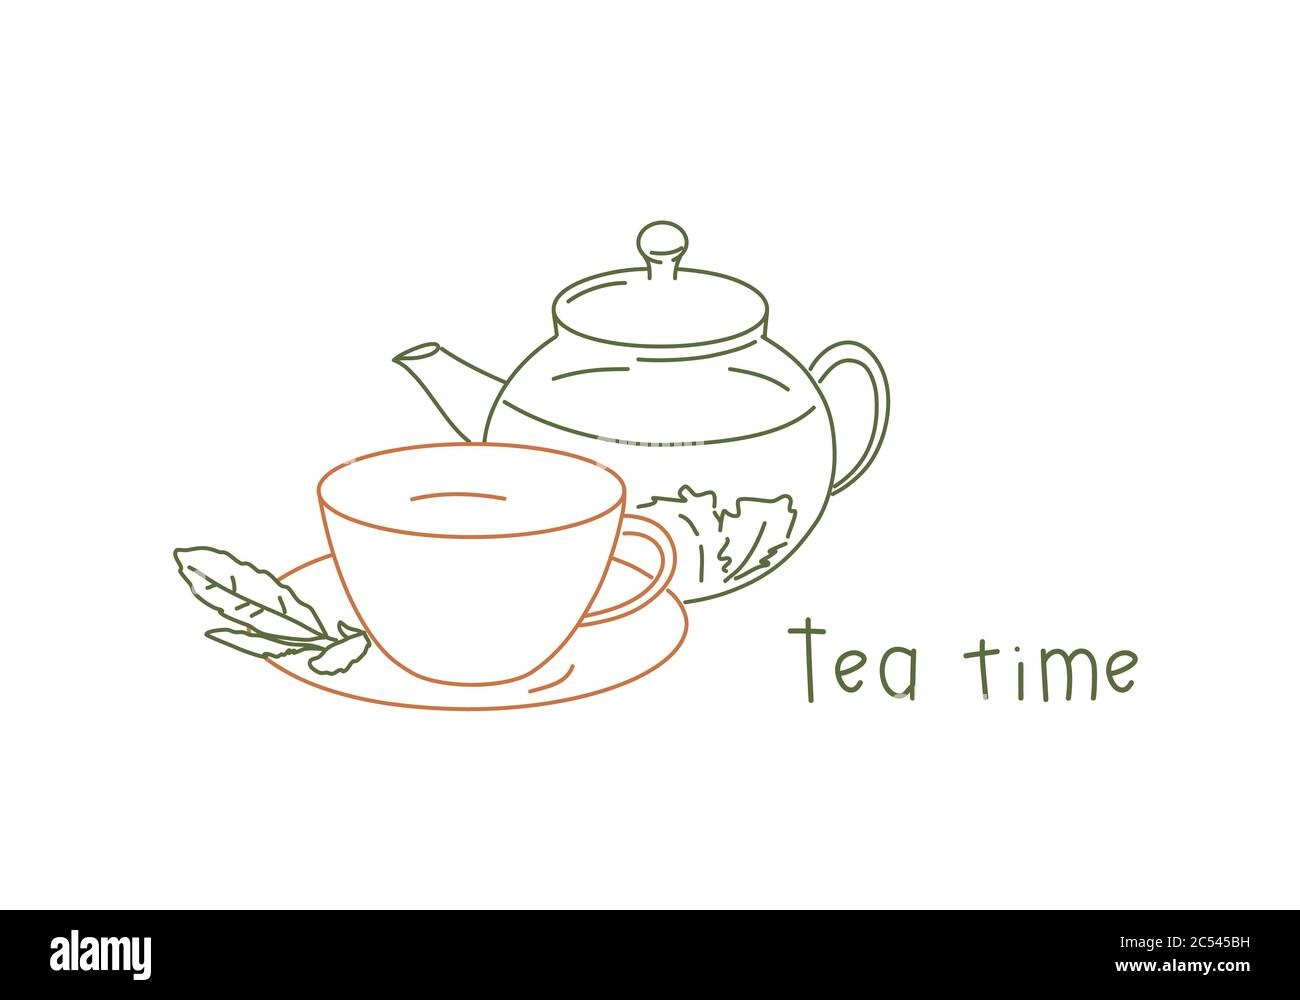 Line Drawing Vector Illustration Of Cup And Saucer With Teapot Tea Time Card Stock Vector Image Art Alamy